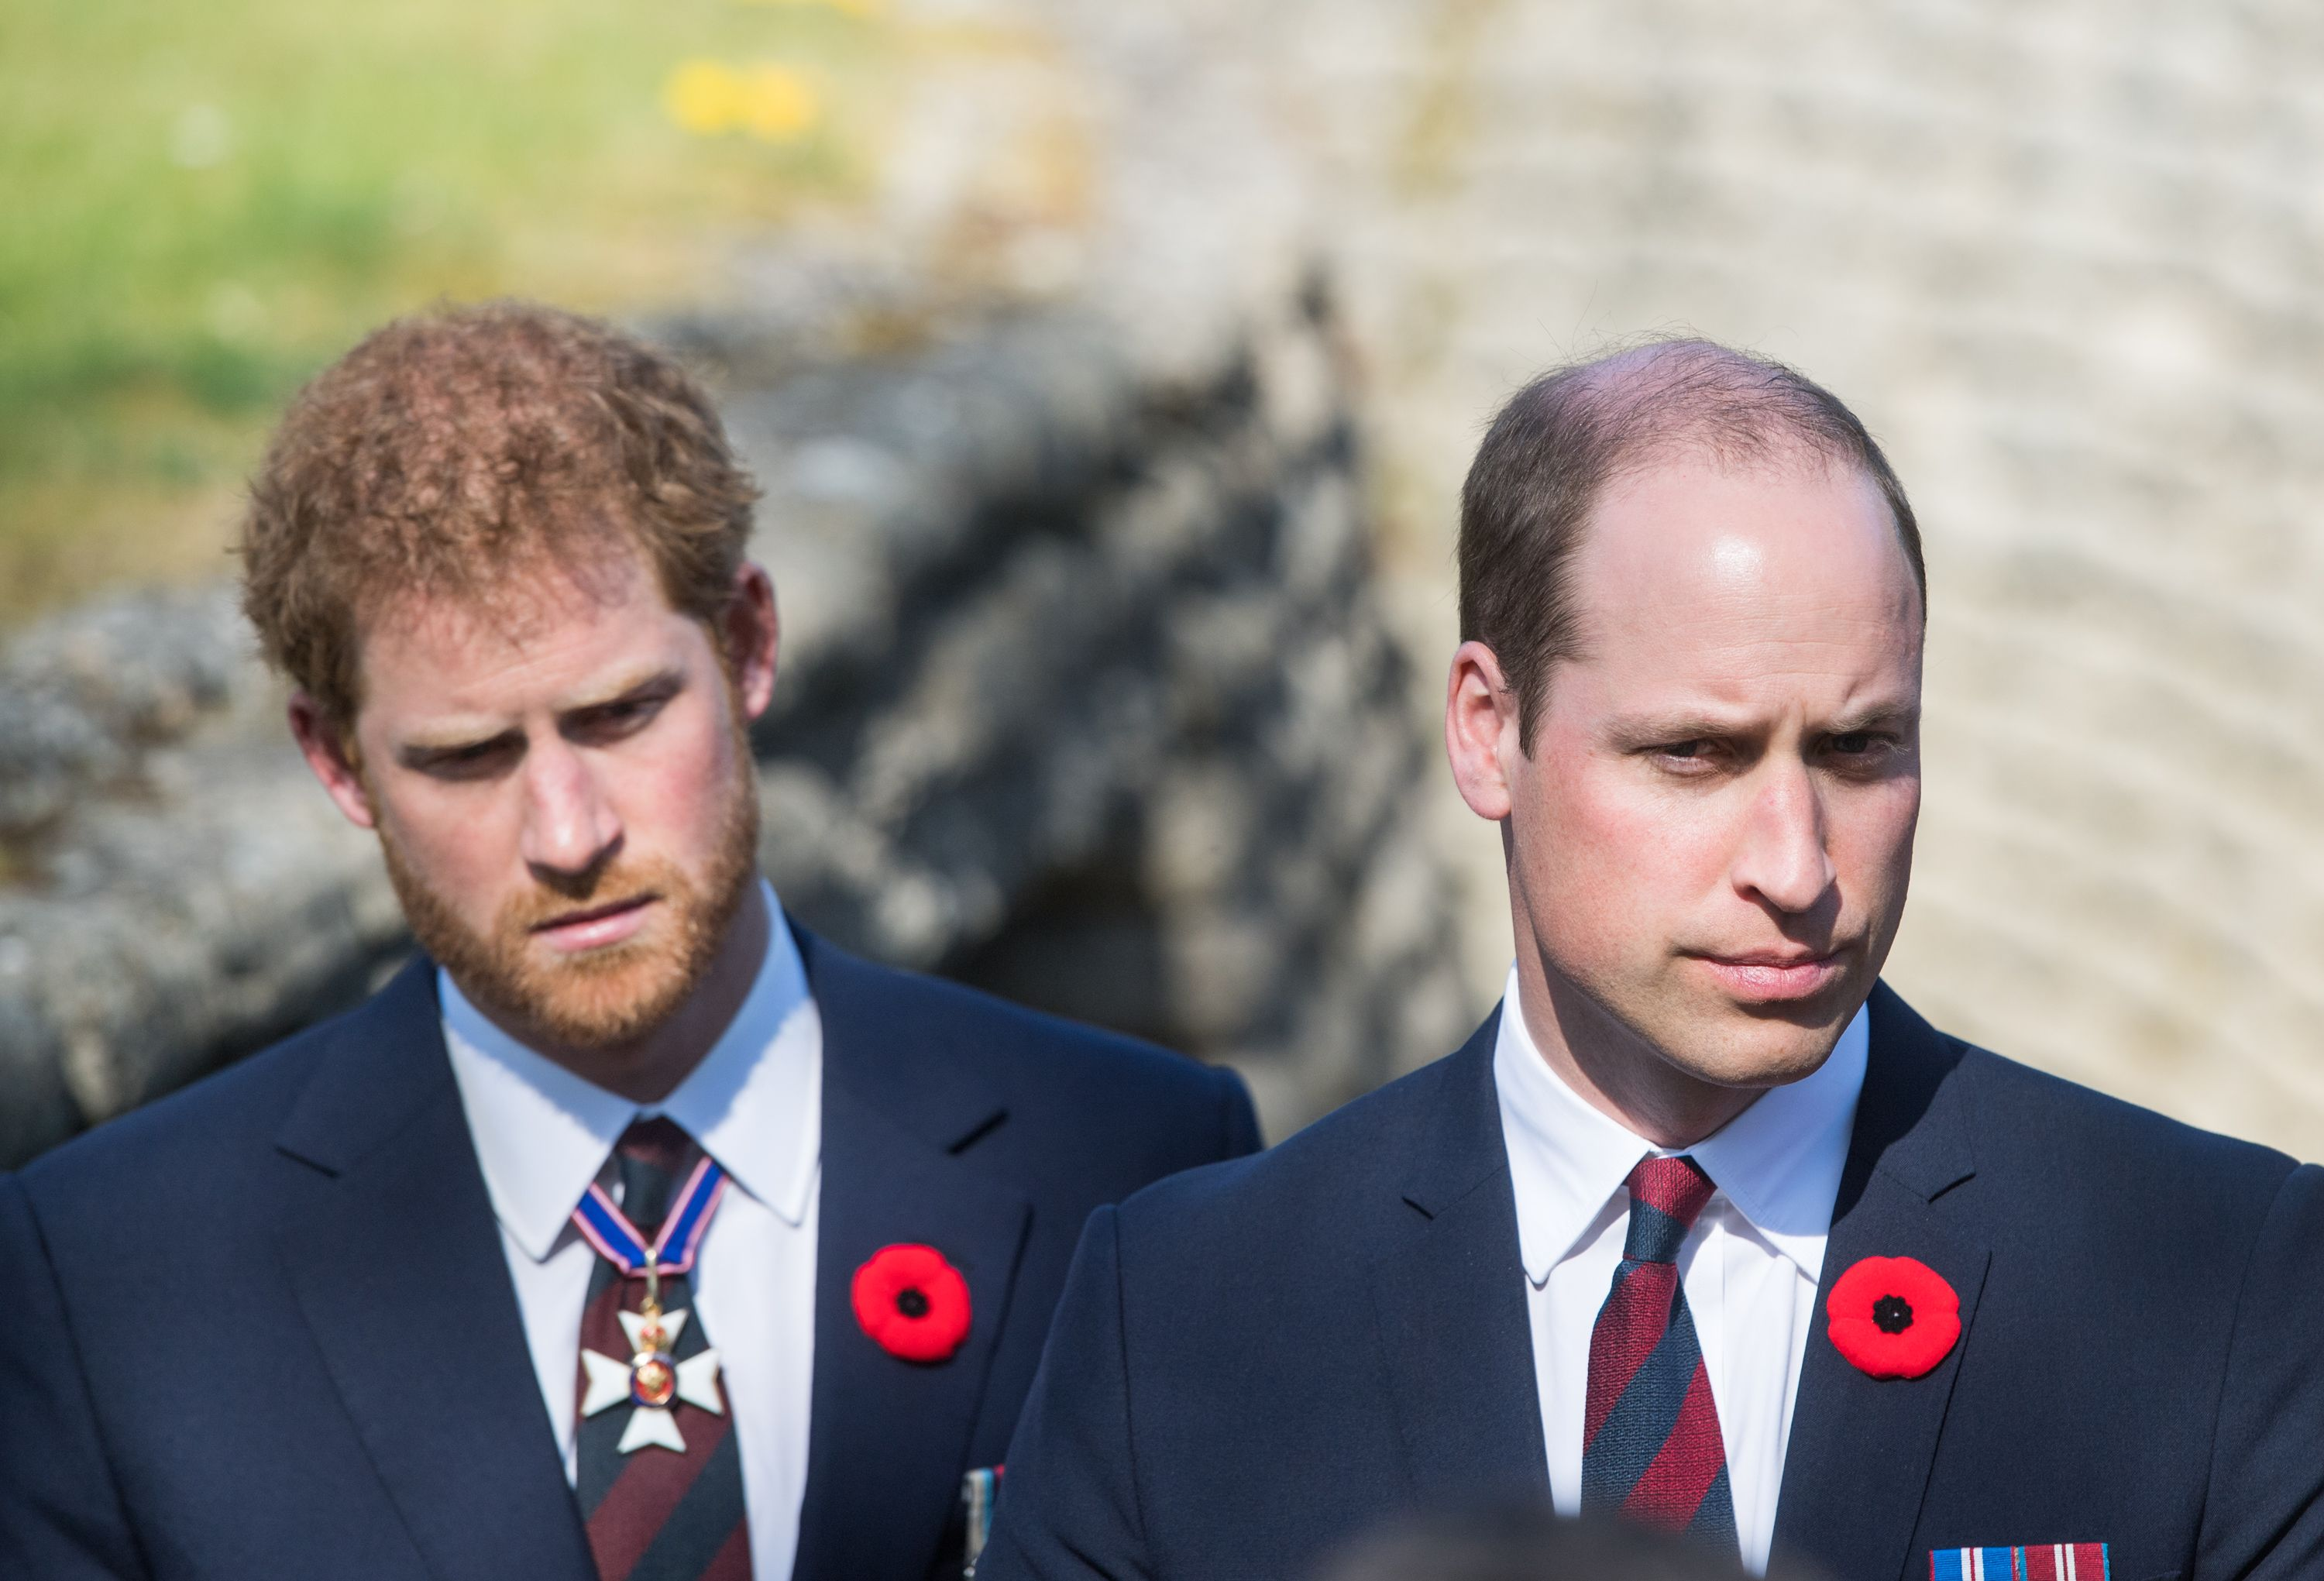 prince william and prince harry feud timeline royal rift explained prince william and prince harry feud